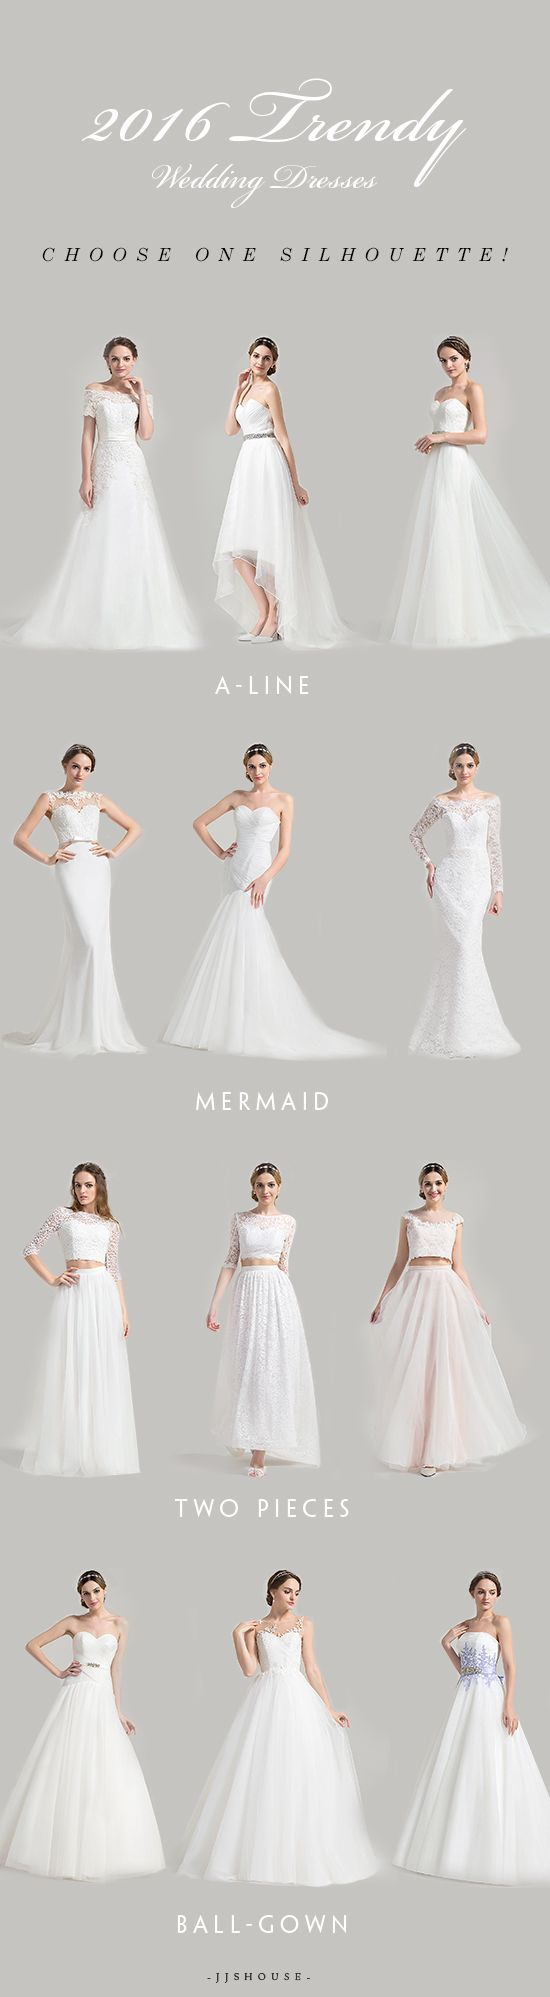 best two becoming one images on pinterest homecoming dresses